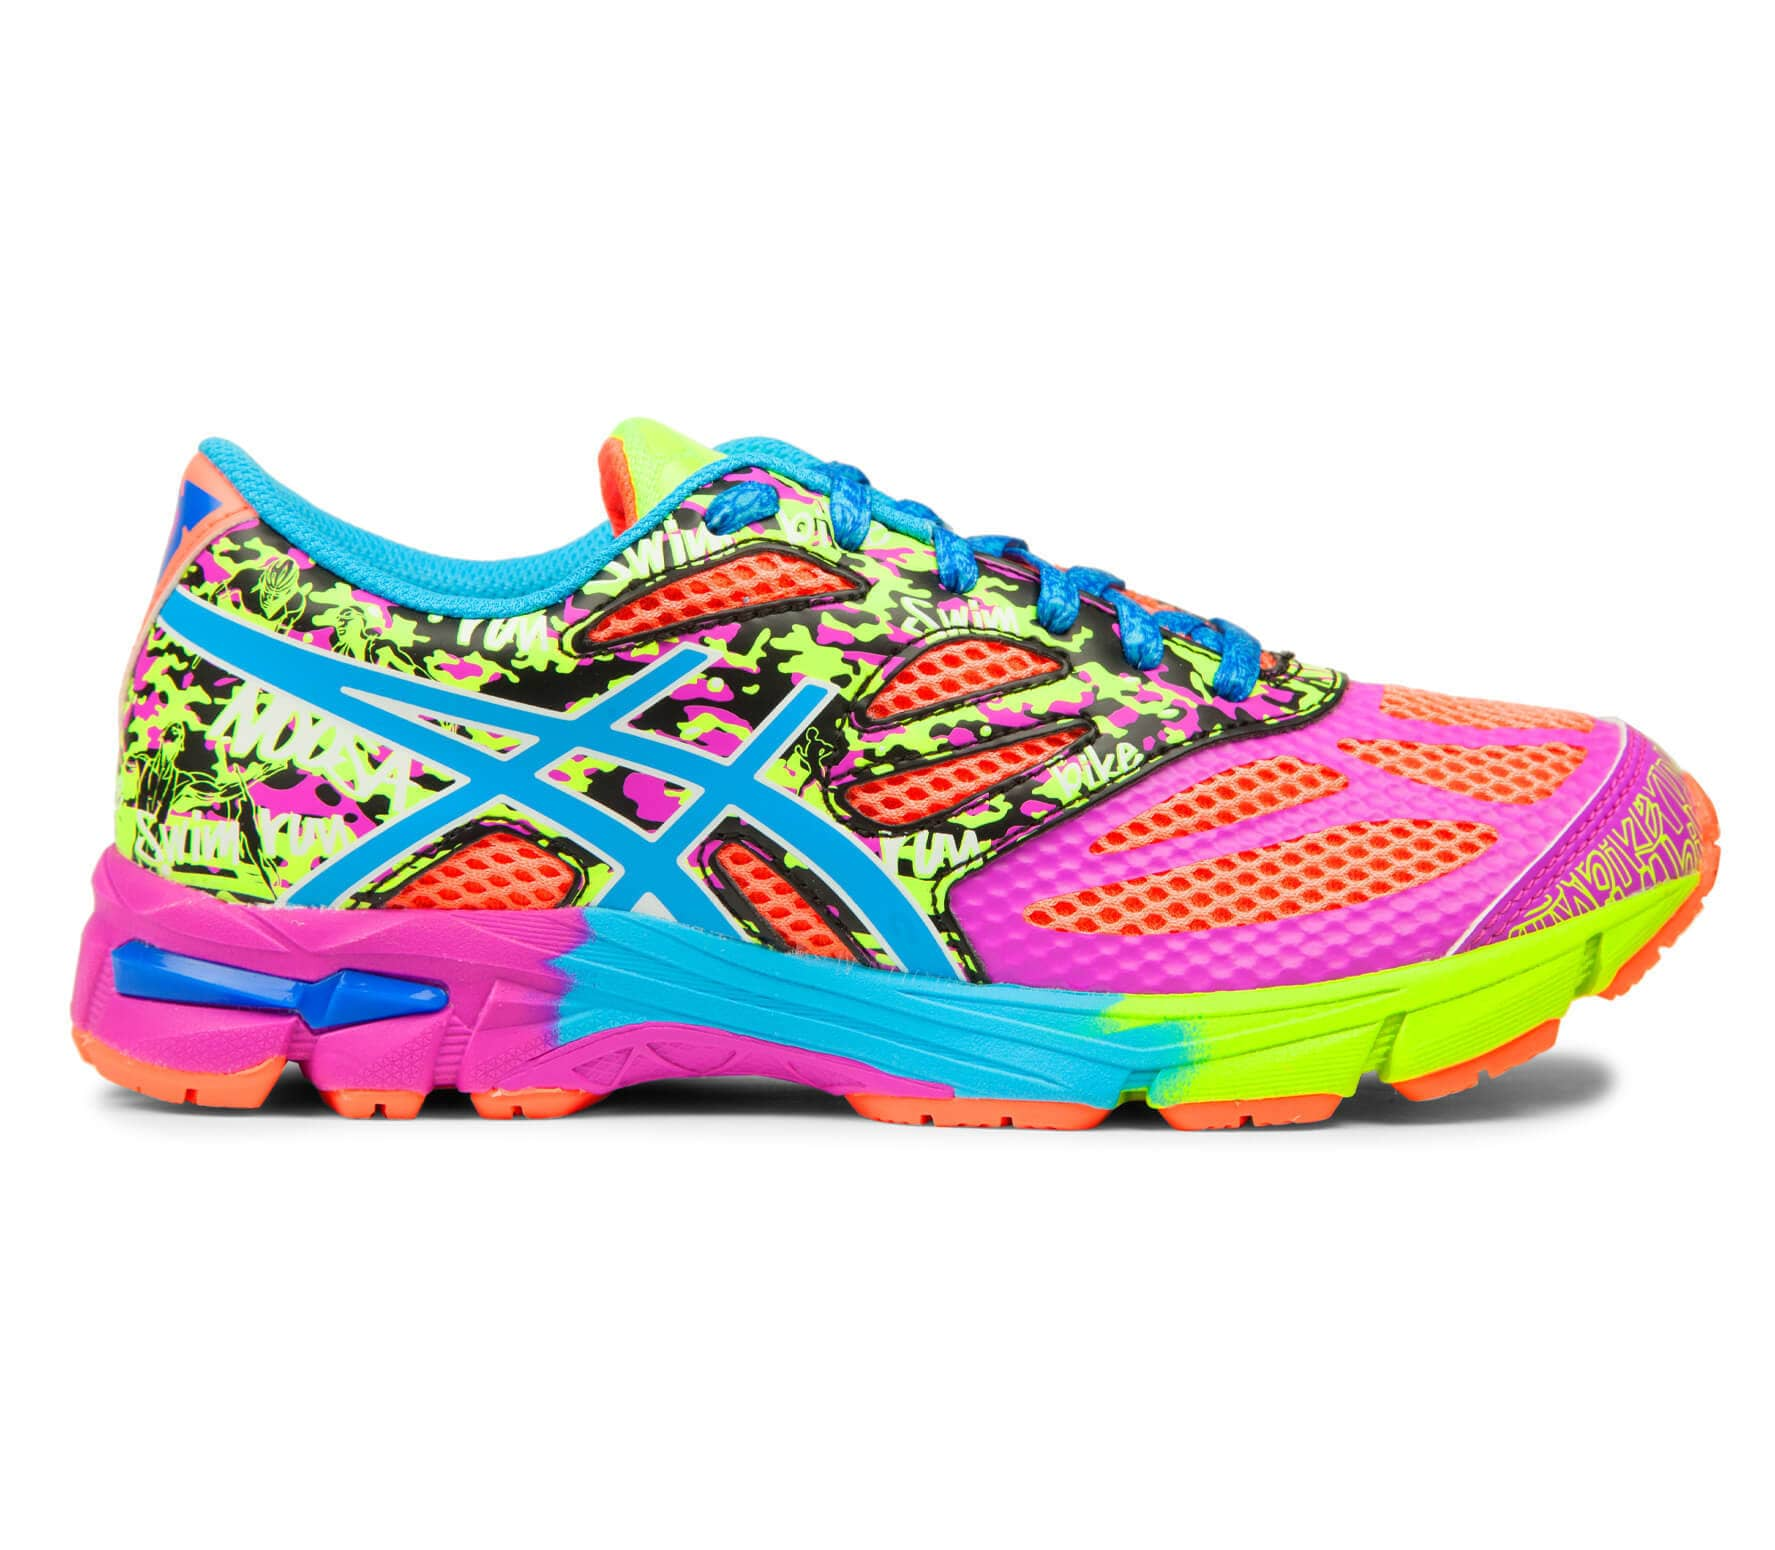 Asics Gel Noosa Tri 10 GS Junior Running Shoes Sports Shoes